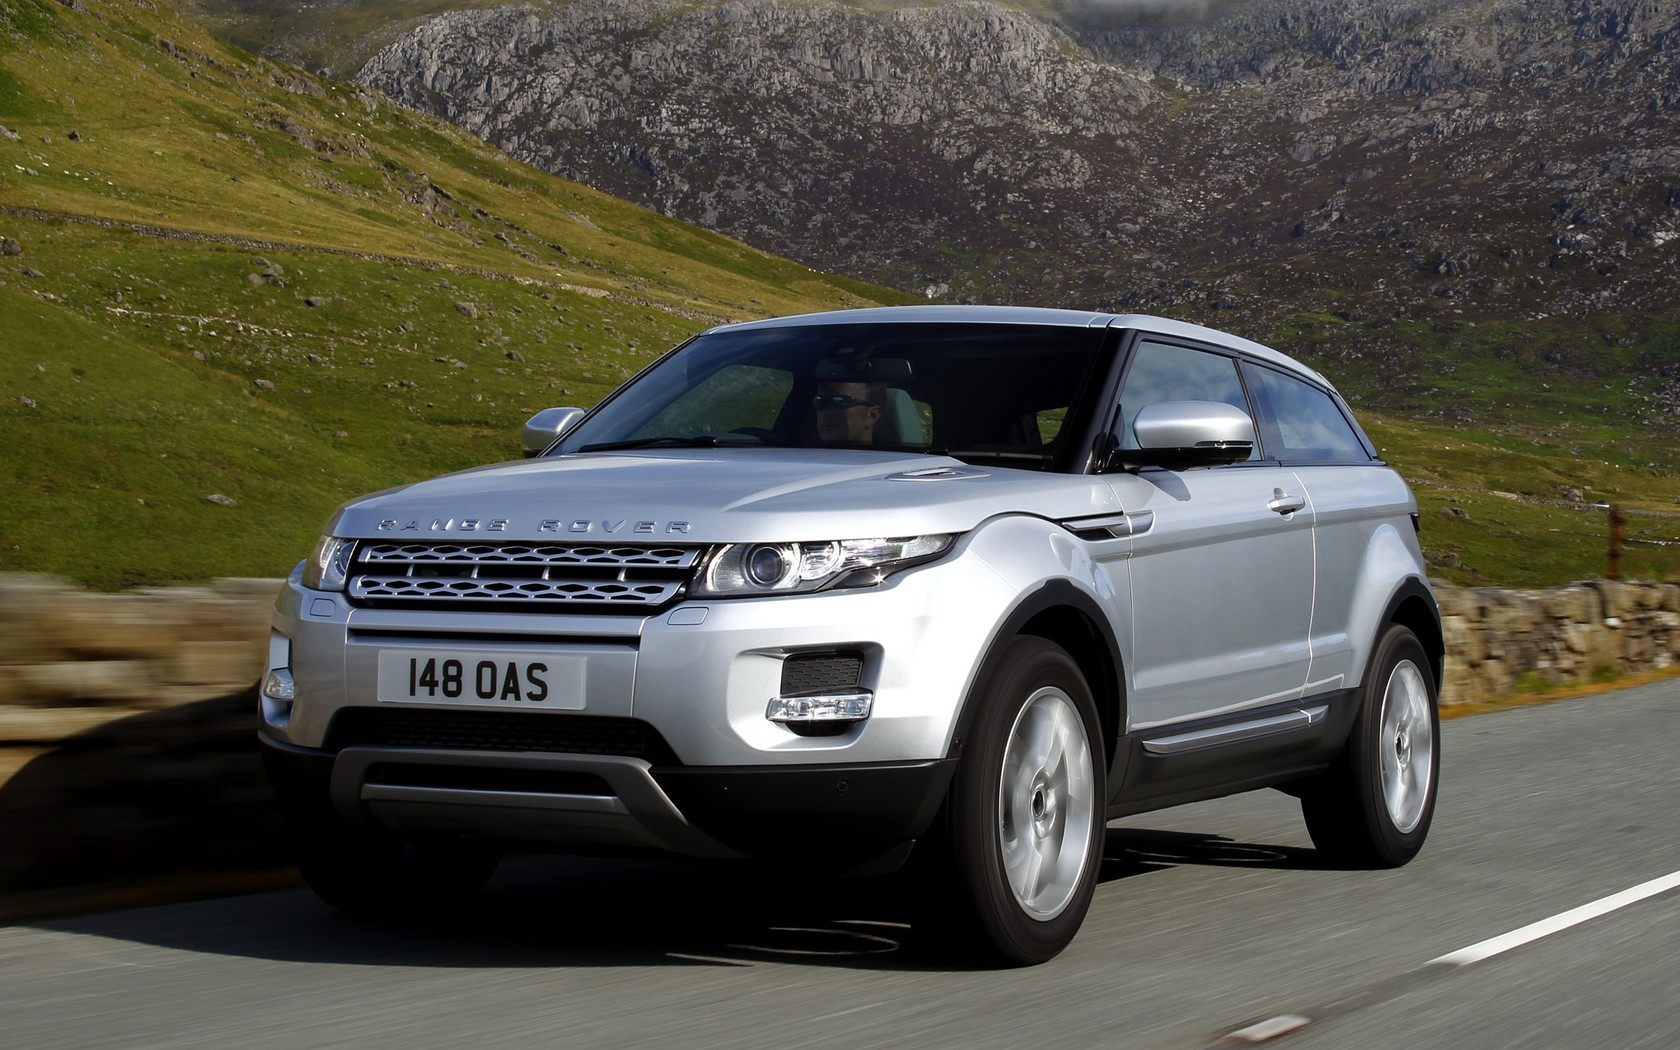 land rover evoque cars in silver wallpapers 1680x1050 427019